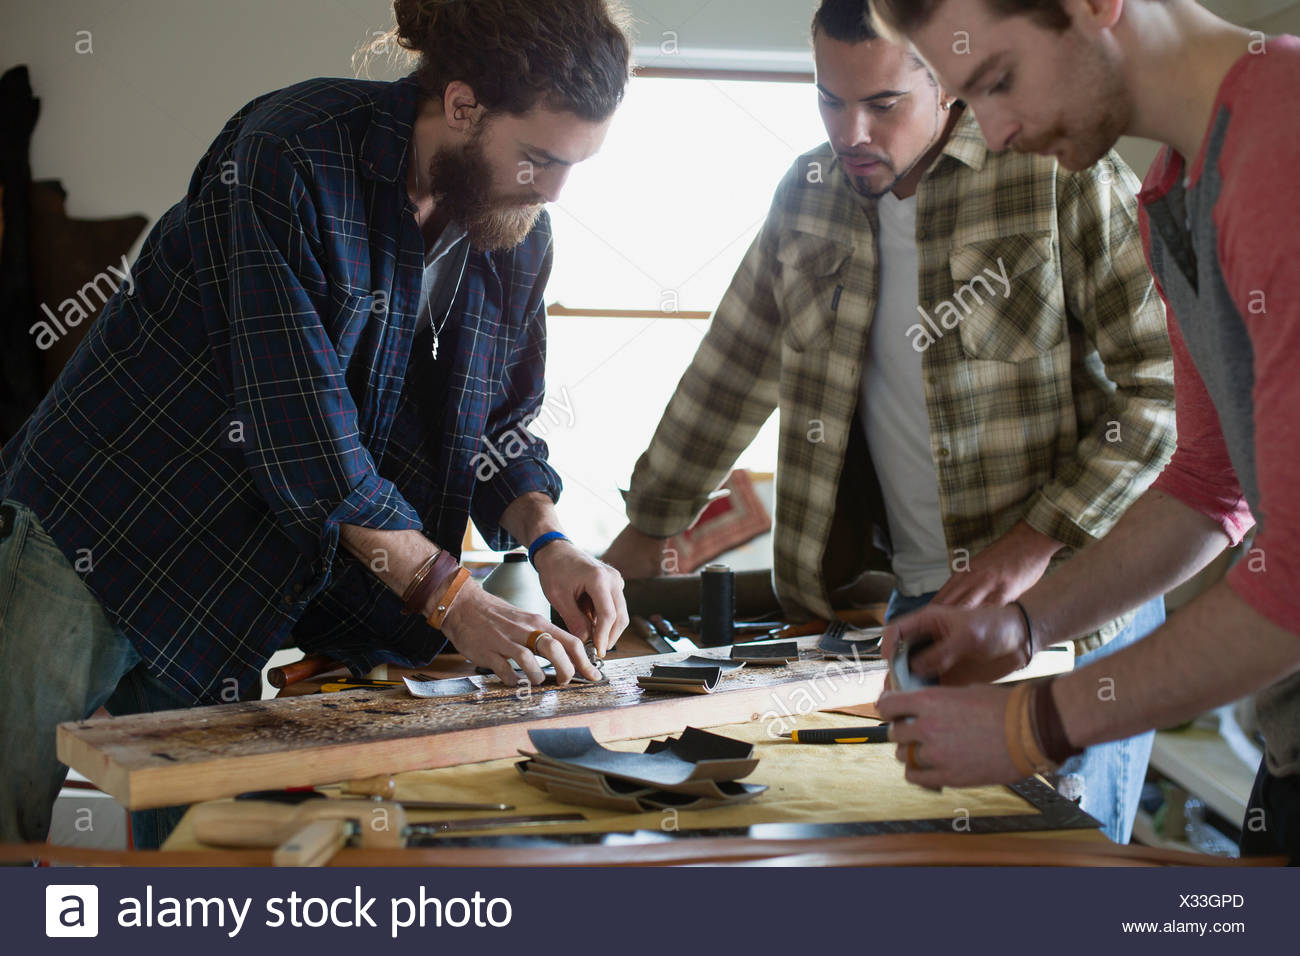 Male colleagues making leather belts at workshop - Stock Image